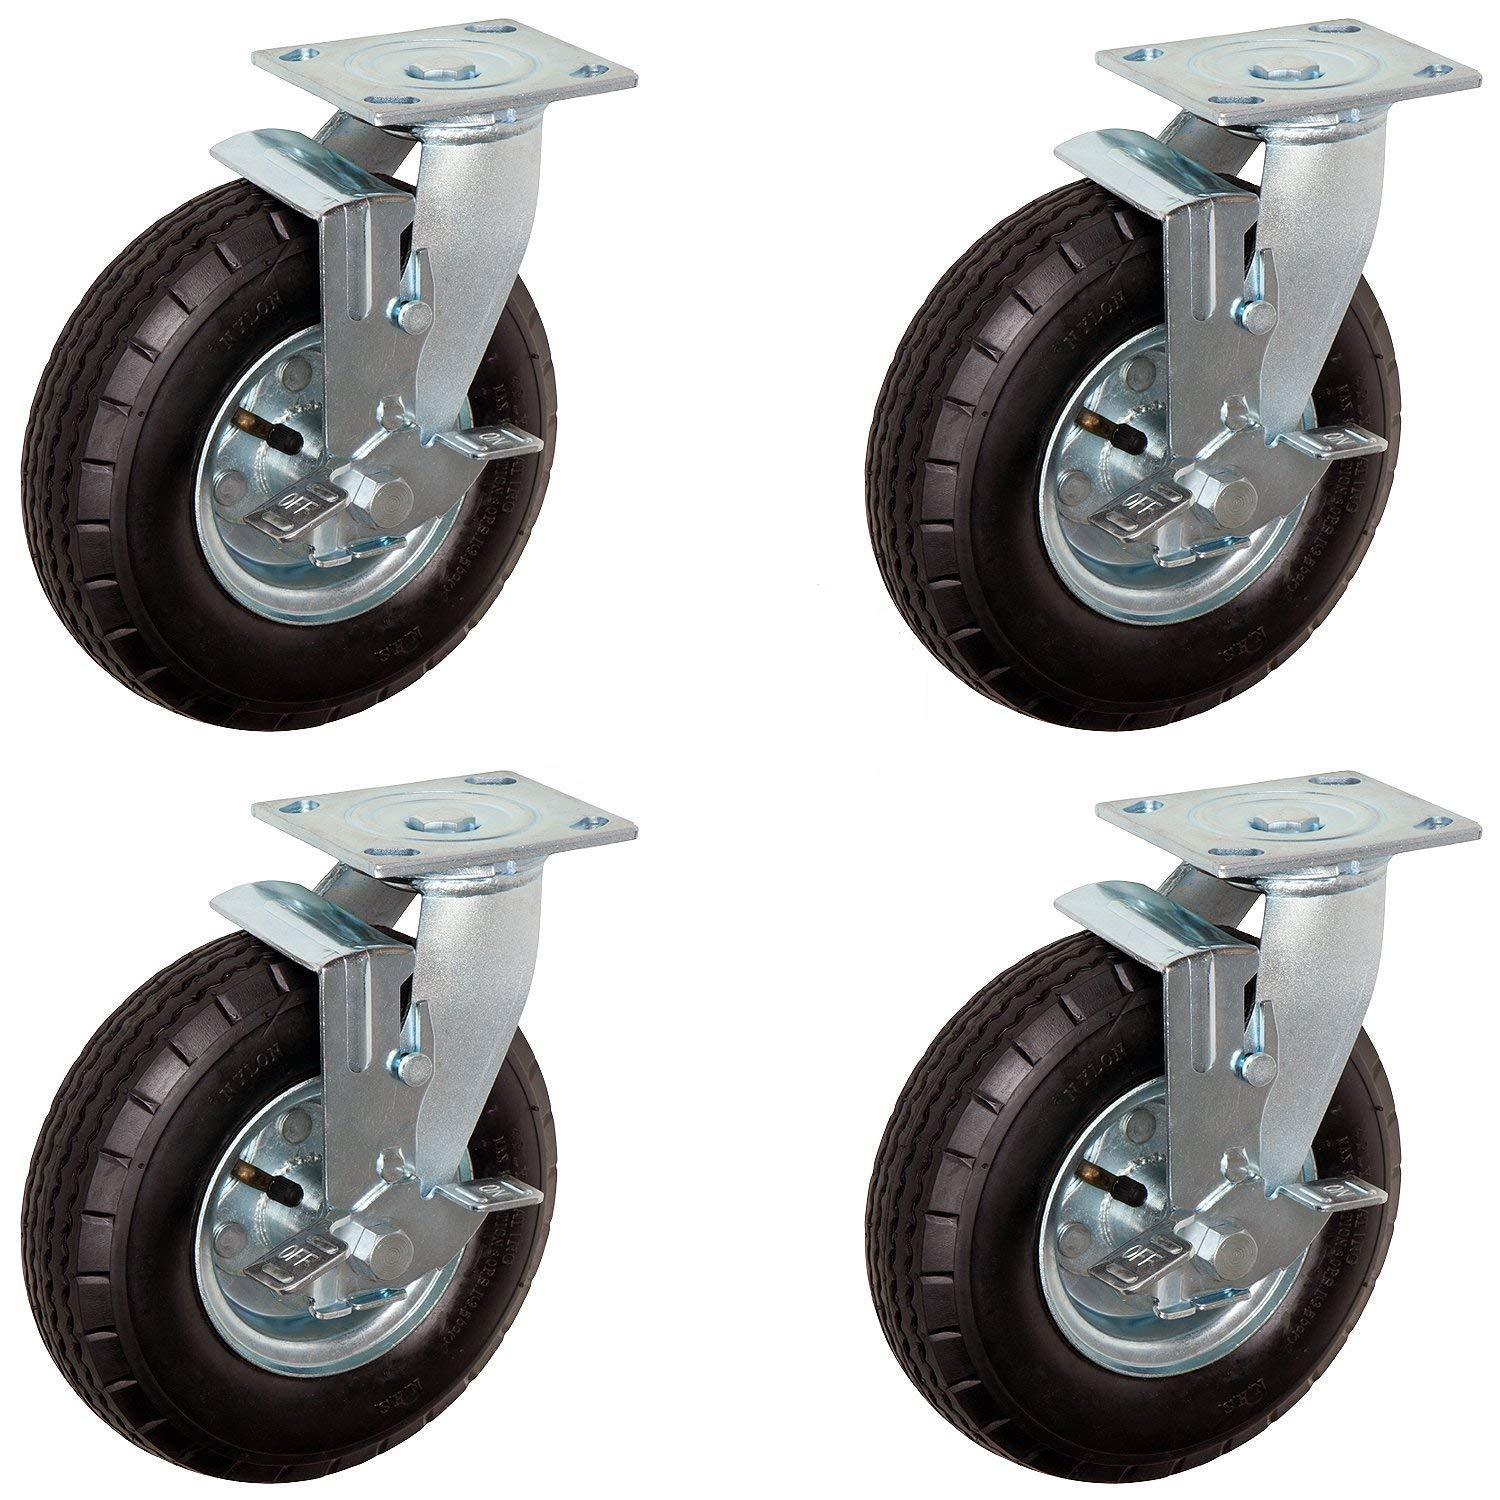 CasterHQ 10'' x 3.5'' Swivel of 4 Set Pneumatic Caster - 4 PLY - 350 LBS PER 1400 LBS PER Set Capacity - Air Filled - Commercial/Industrial Application 10 inch x 3.5 inch Shock Absorption